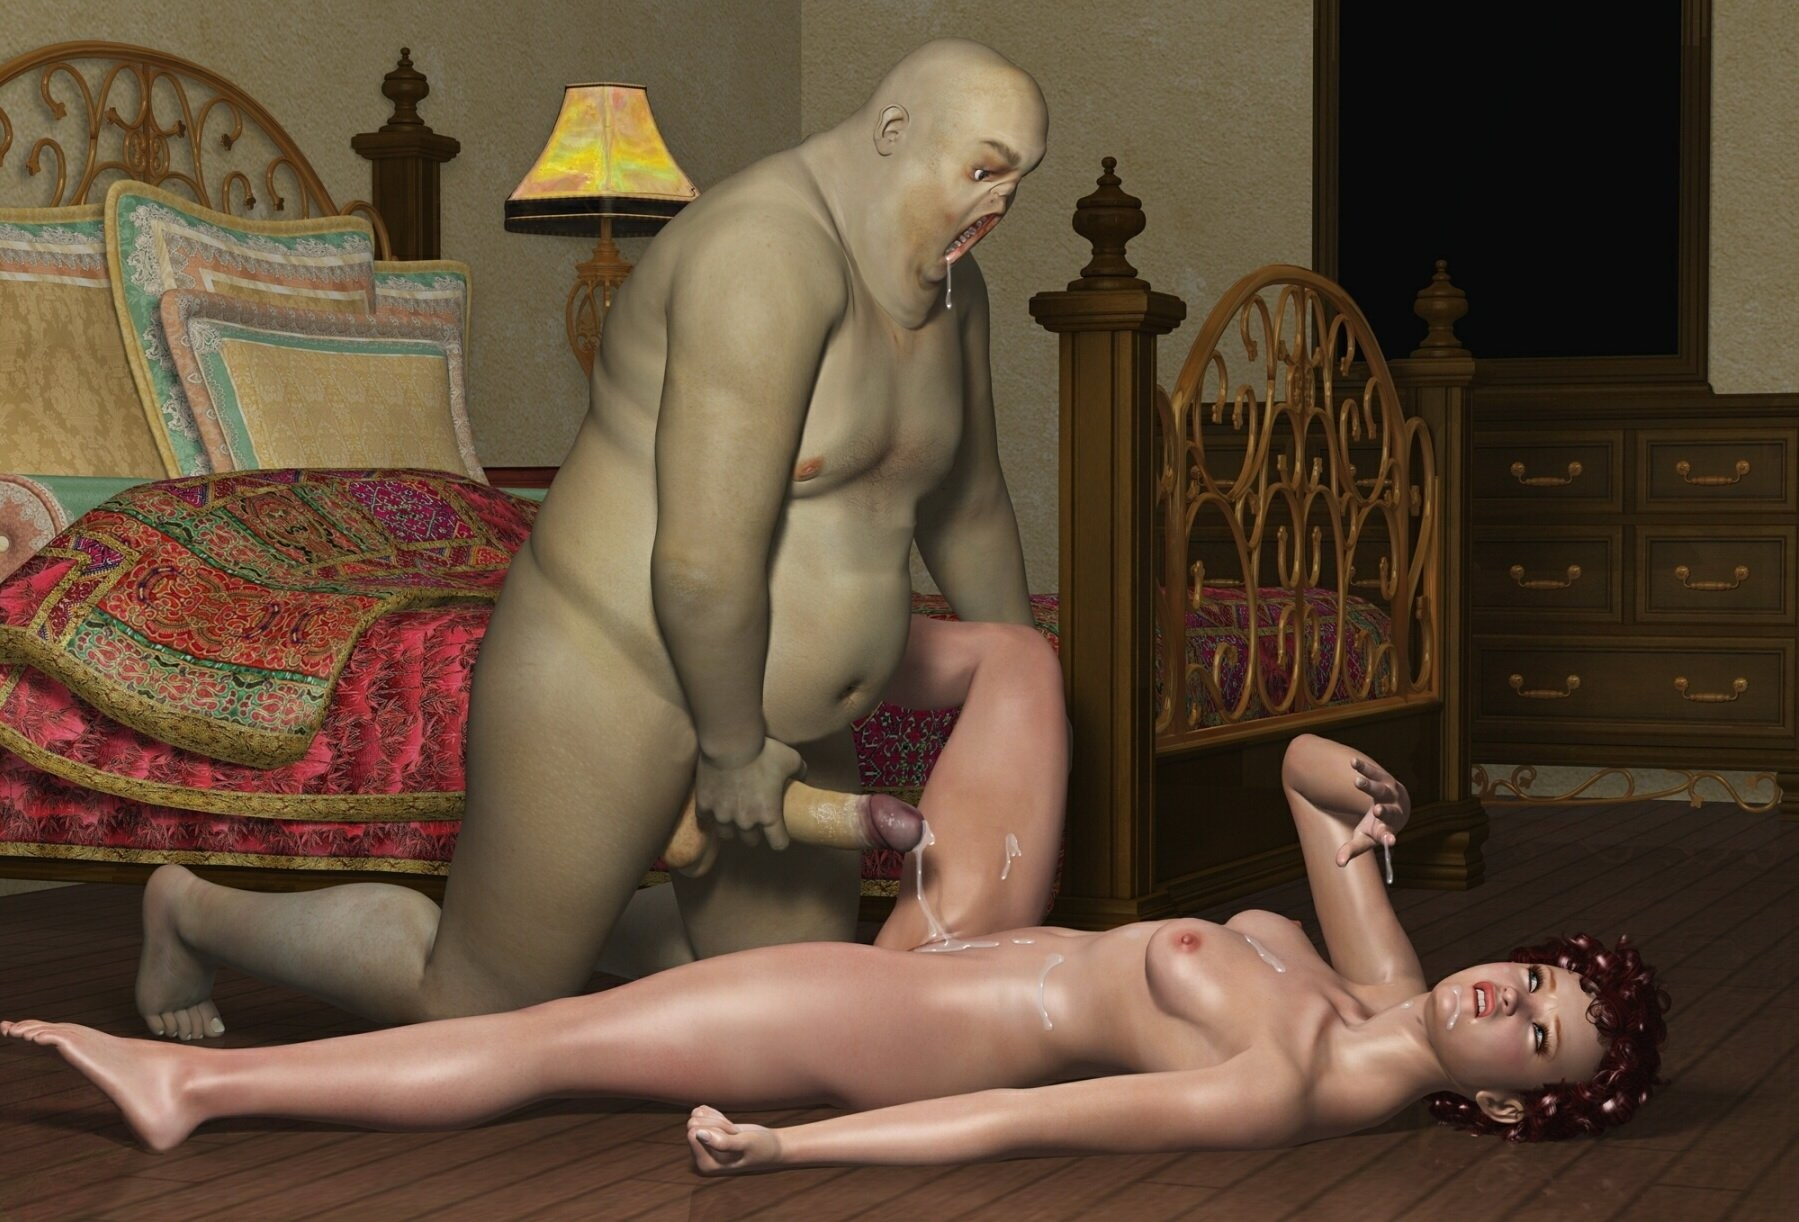 Xxx nakedРіСЂСѓ [3d game] horror adult galleries